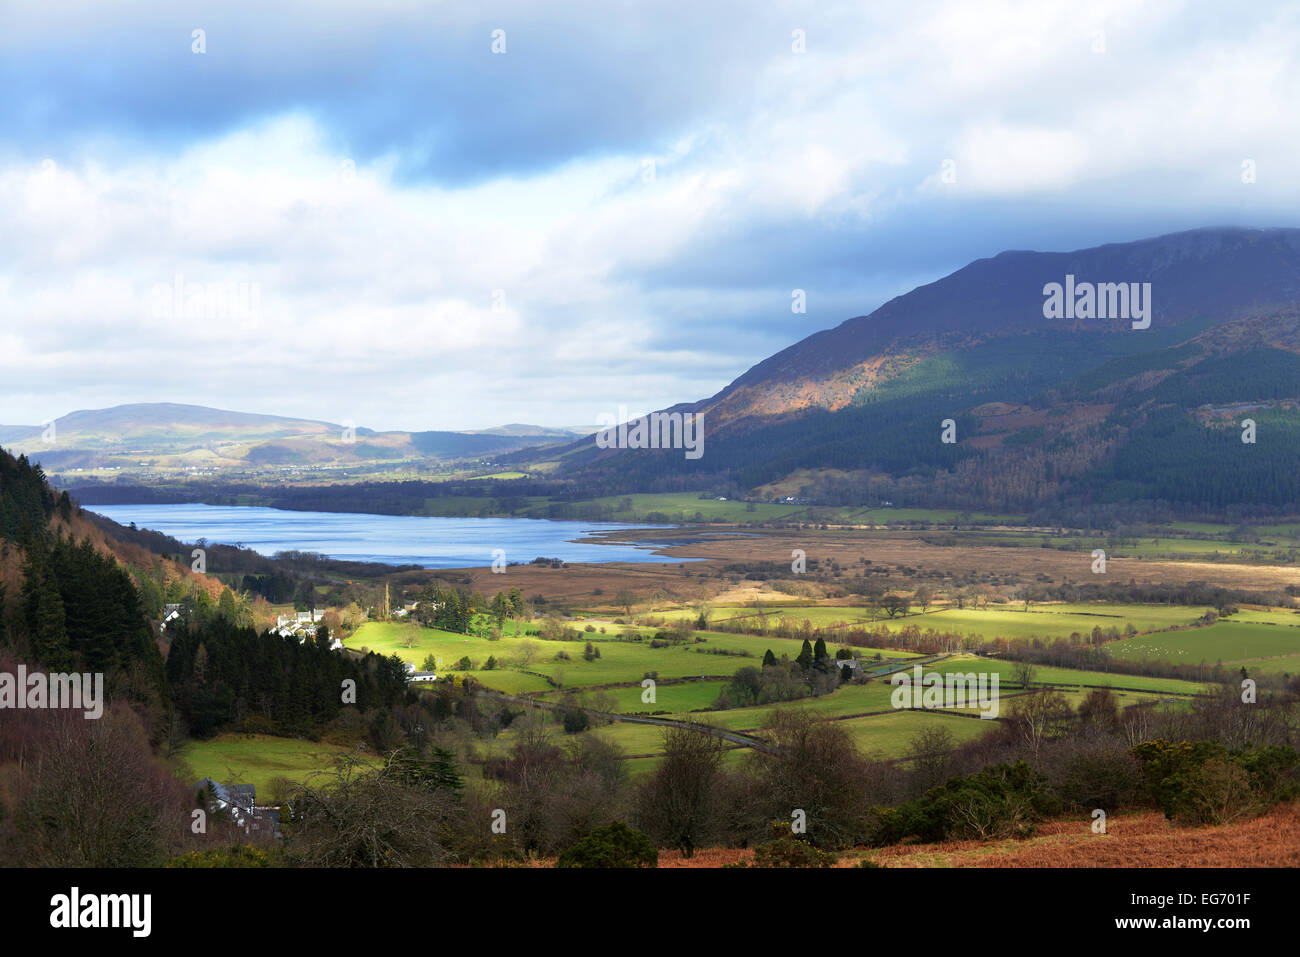 View from Whinlatter Pass towards Lake Bassenthwaite overlooked by Skiddaw in The Lake District, UK - Stock Image